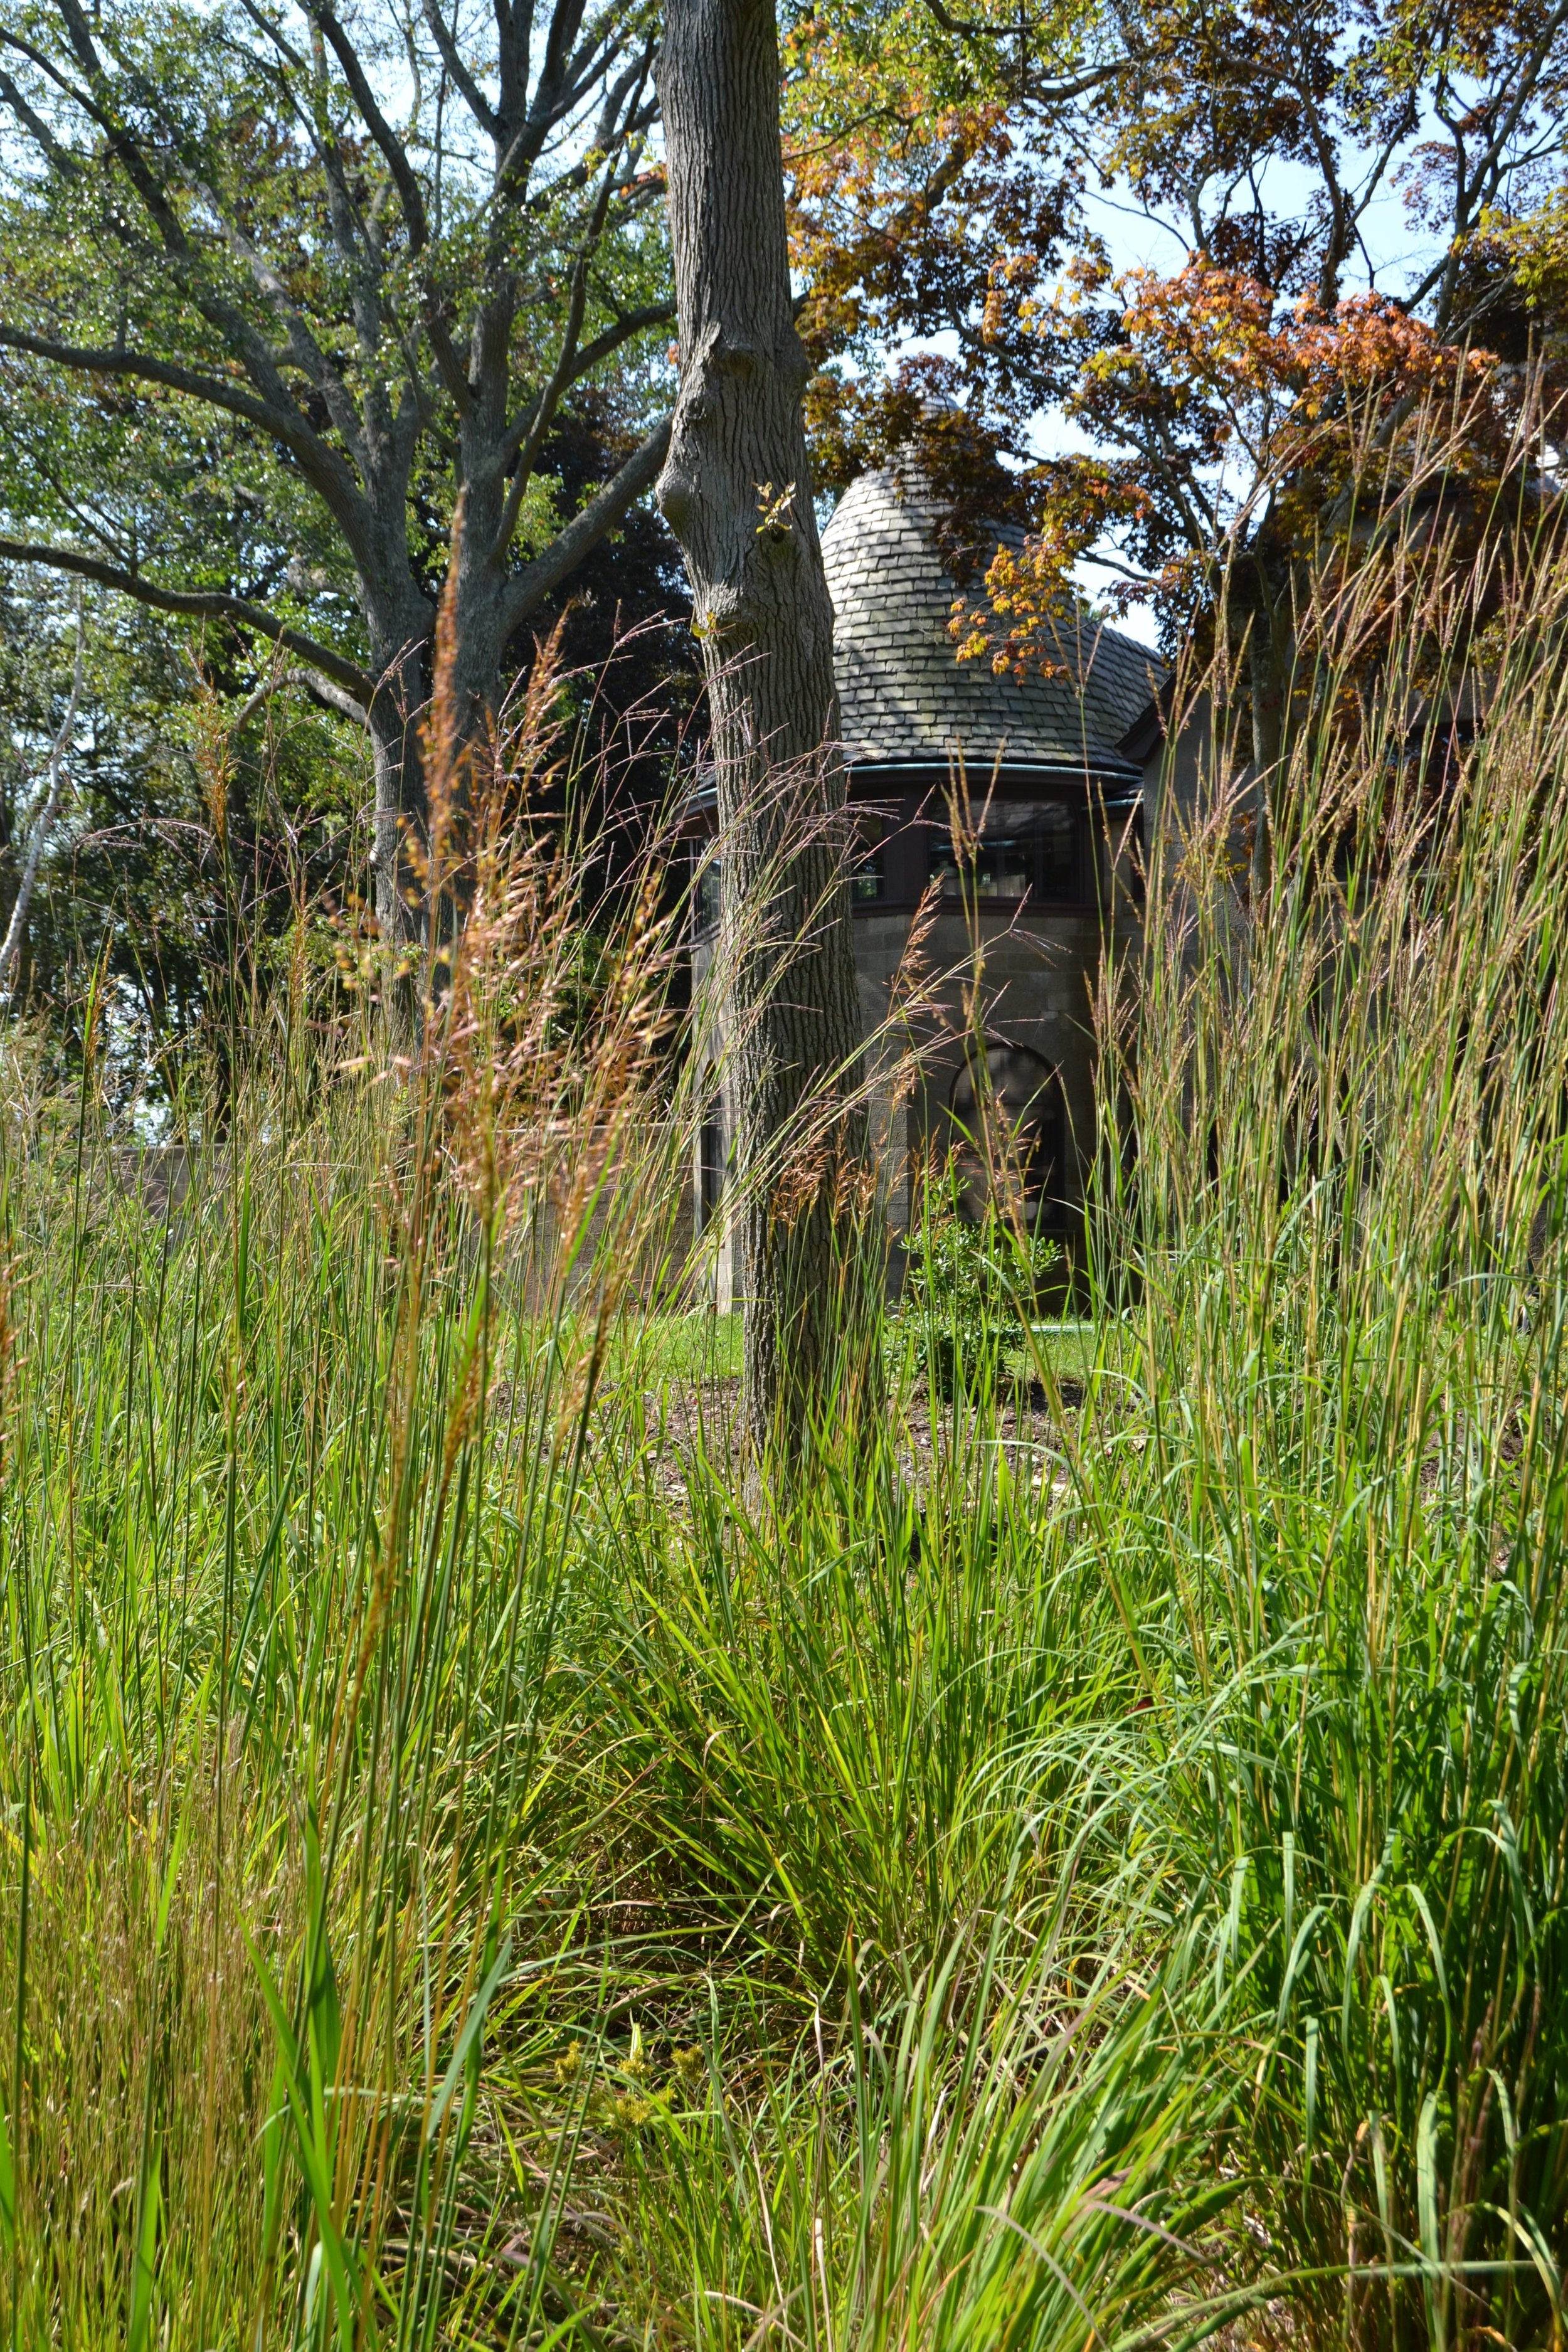 Meadow - A meadow of native grasses replaces lawn and screens a septic system at Seatuck Environmental Association